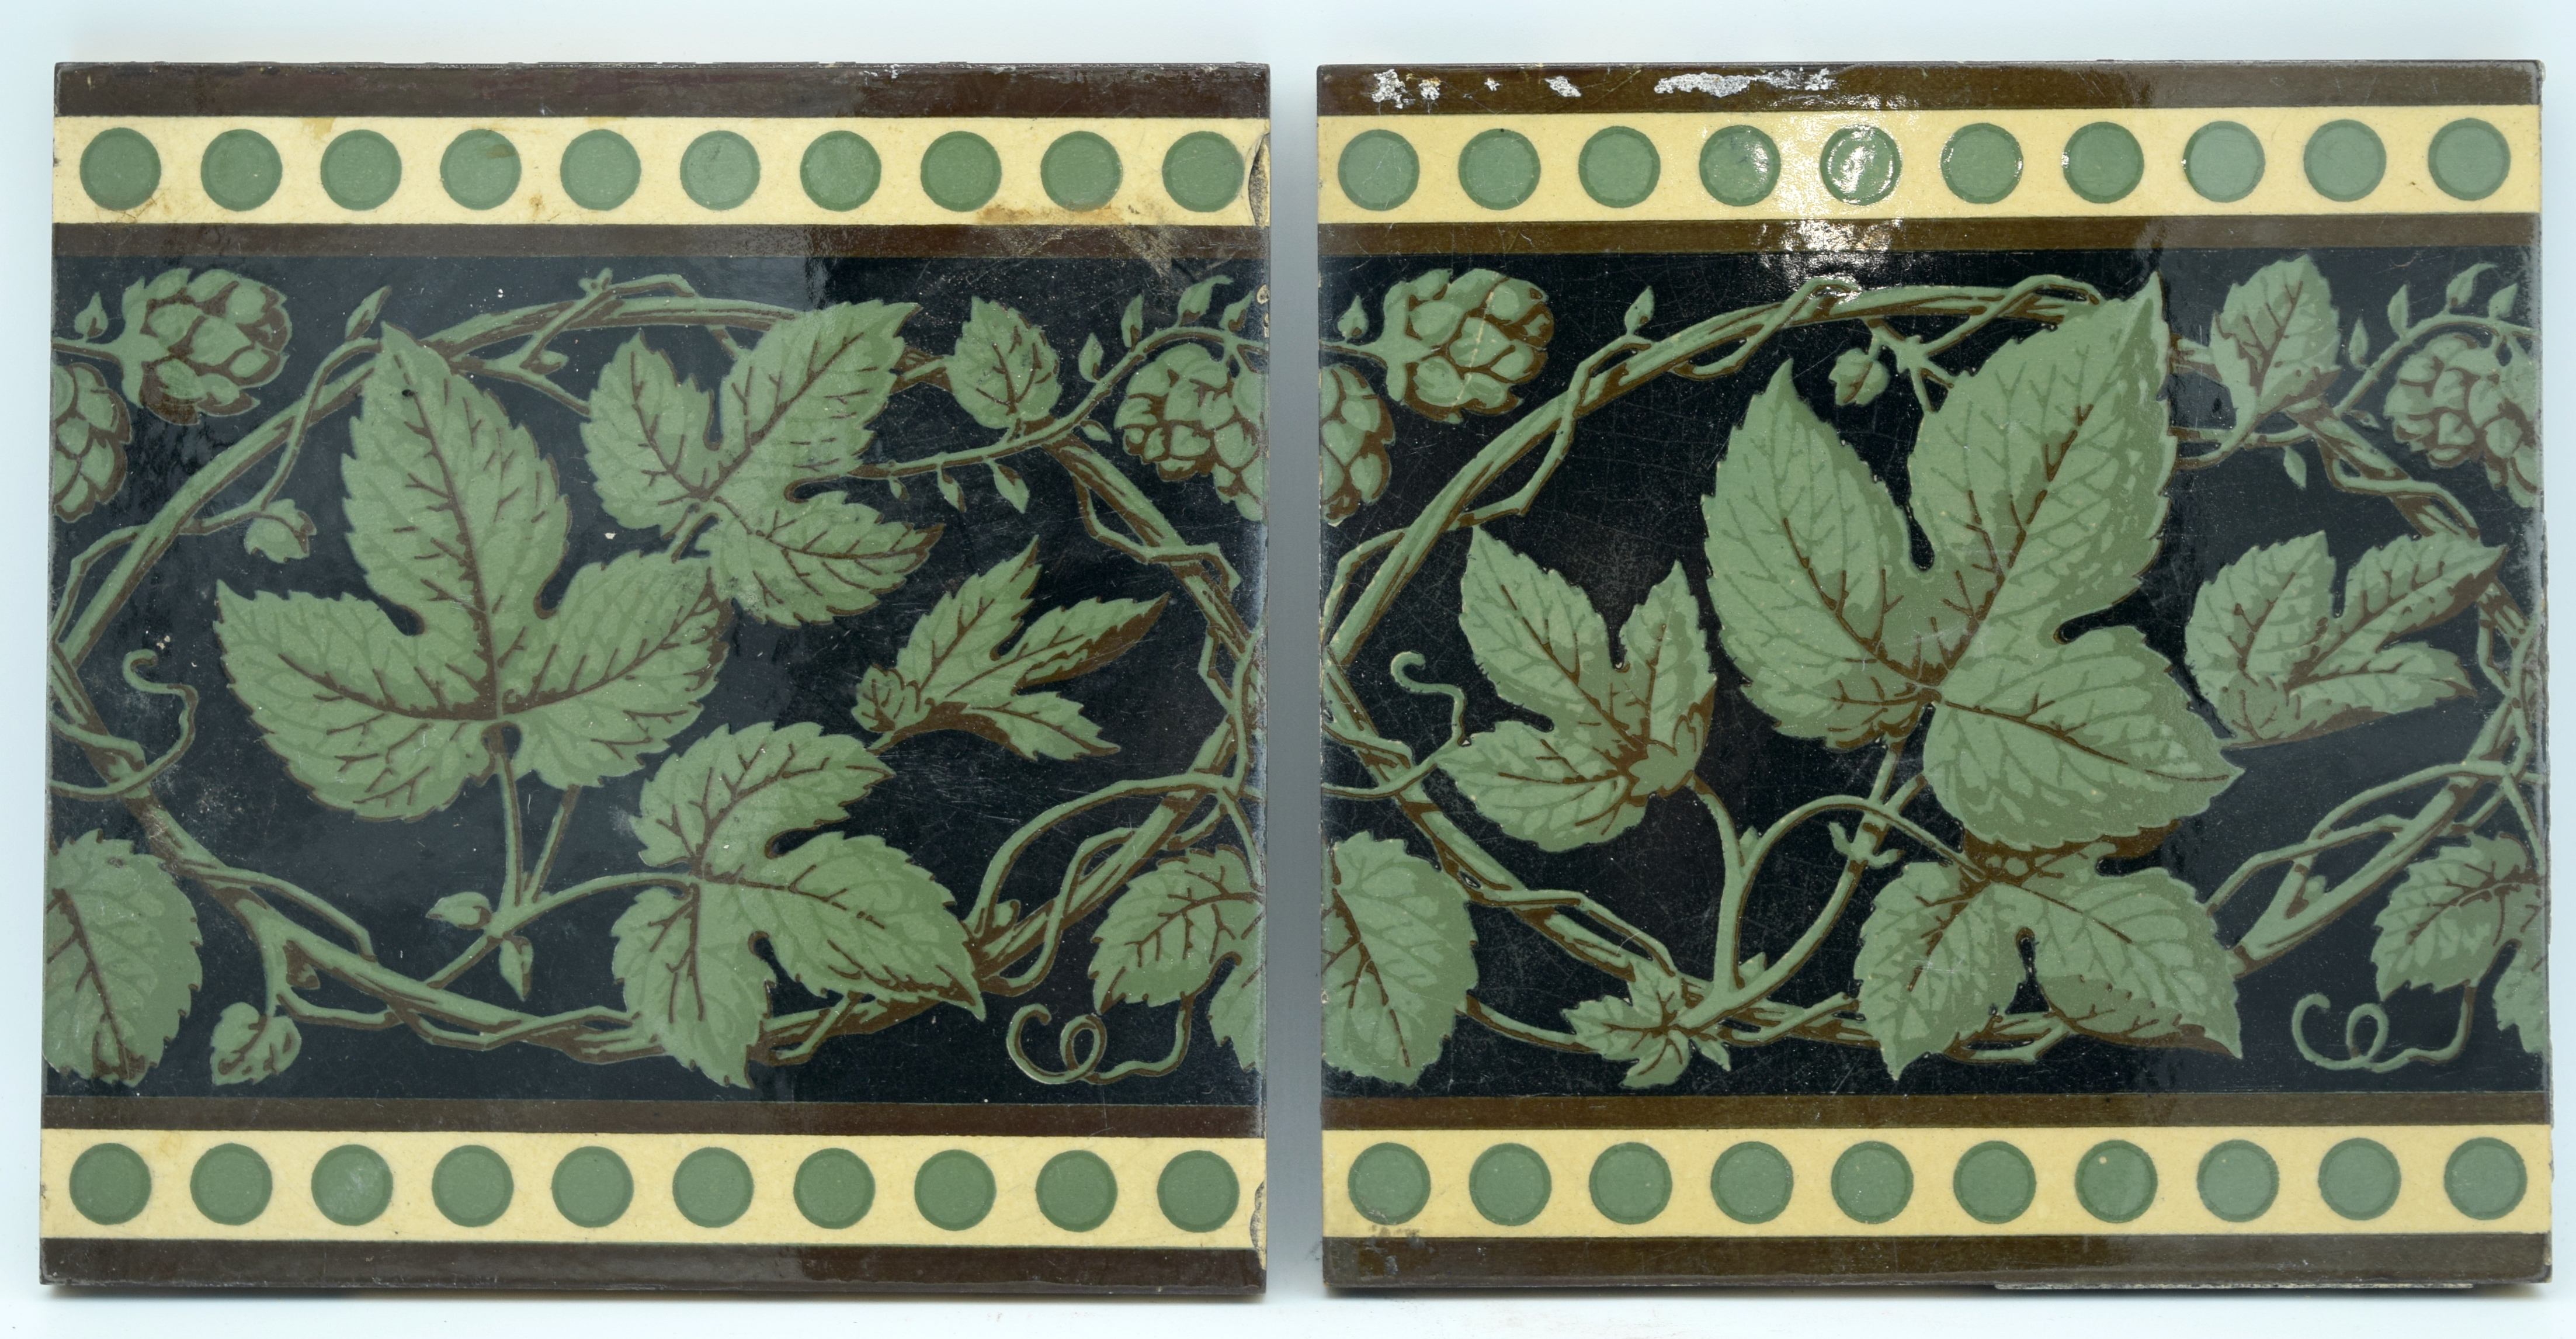 A Collection of Minton China works tiles 20.5 x 20.5 cm (21) - Image 2 of 2